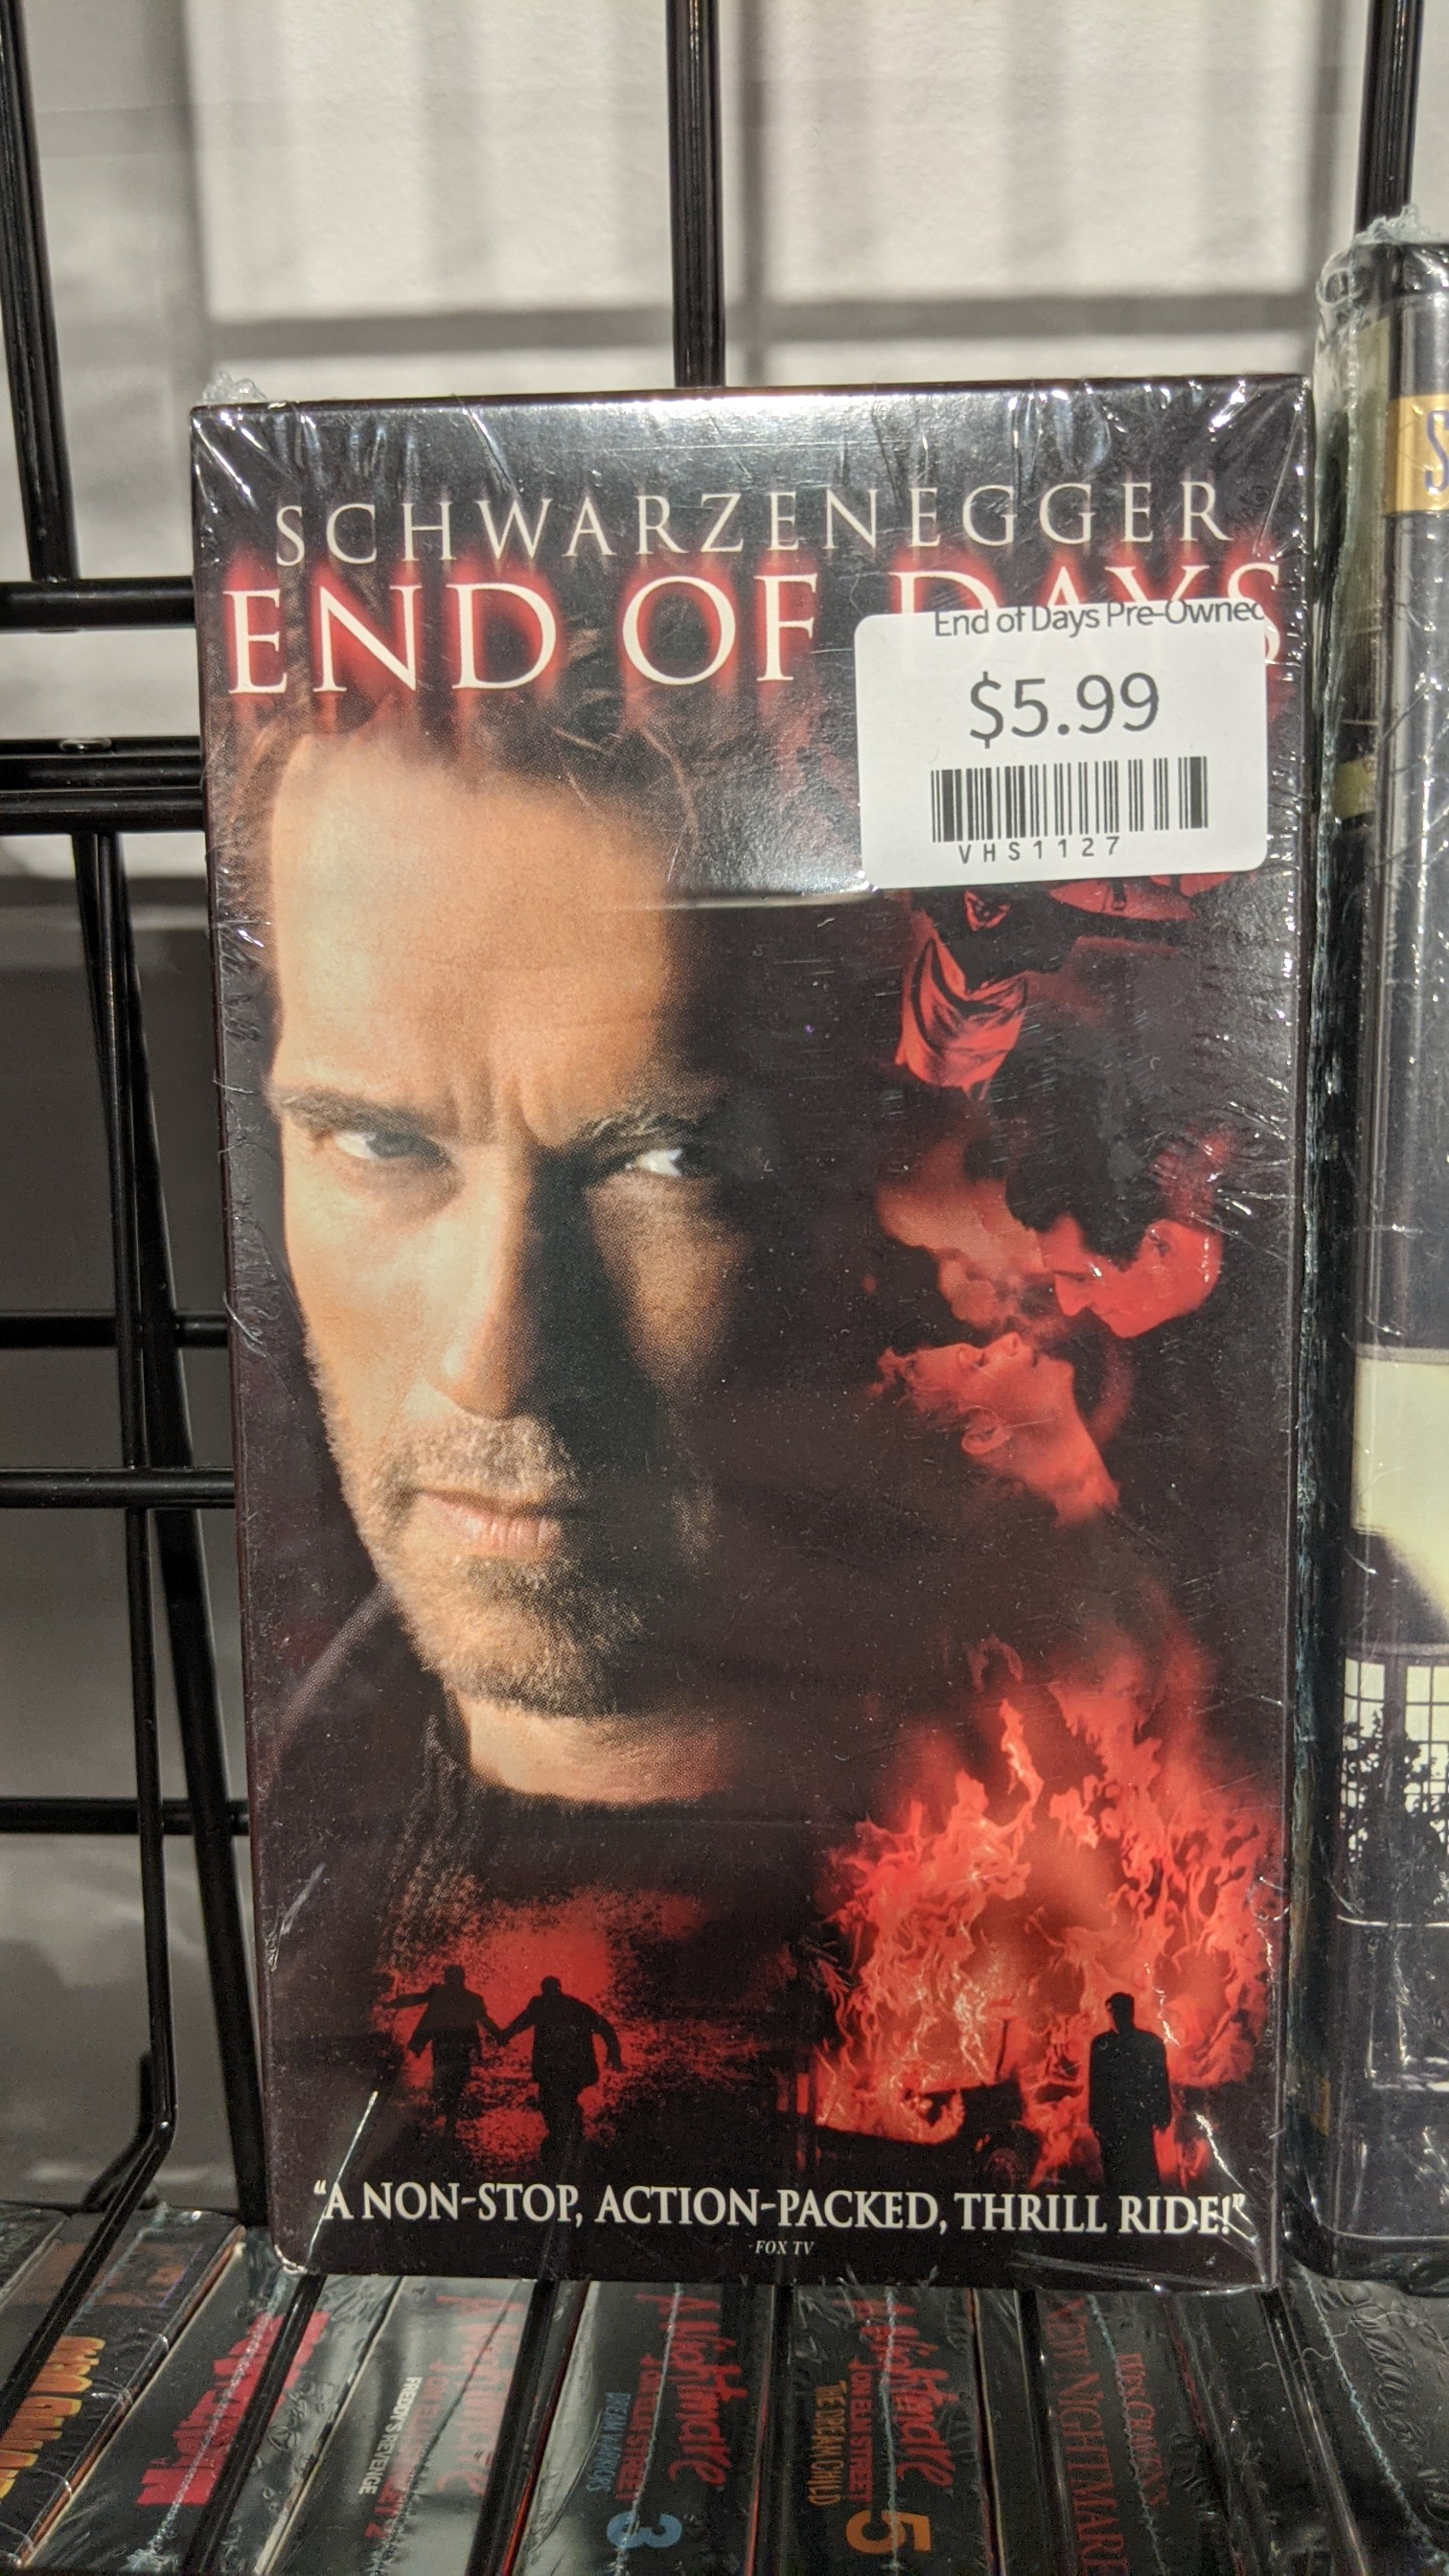 End of Days Pre-Owned